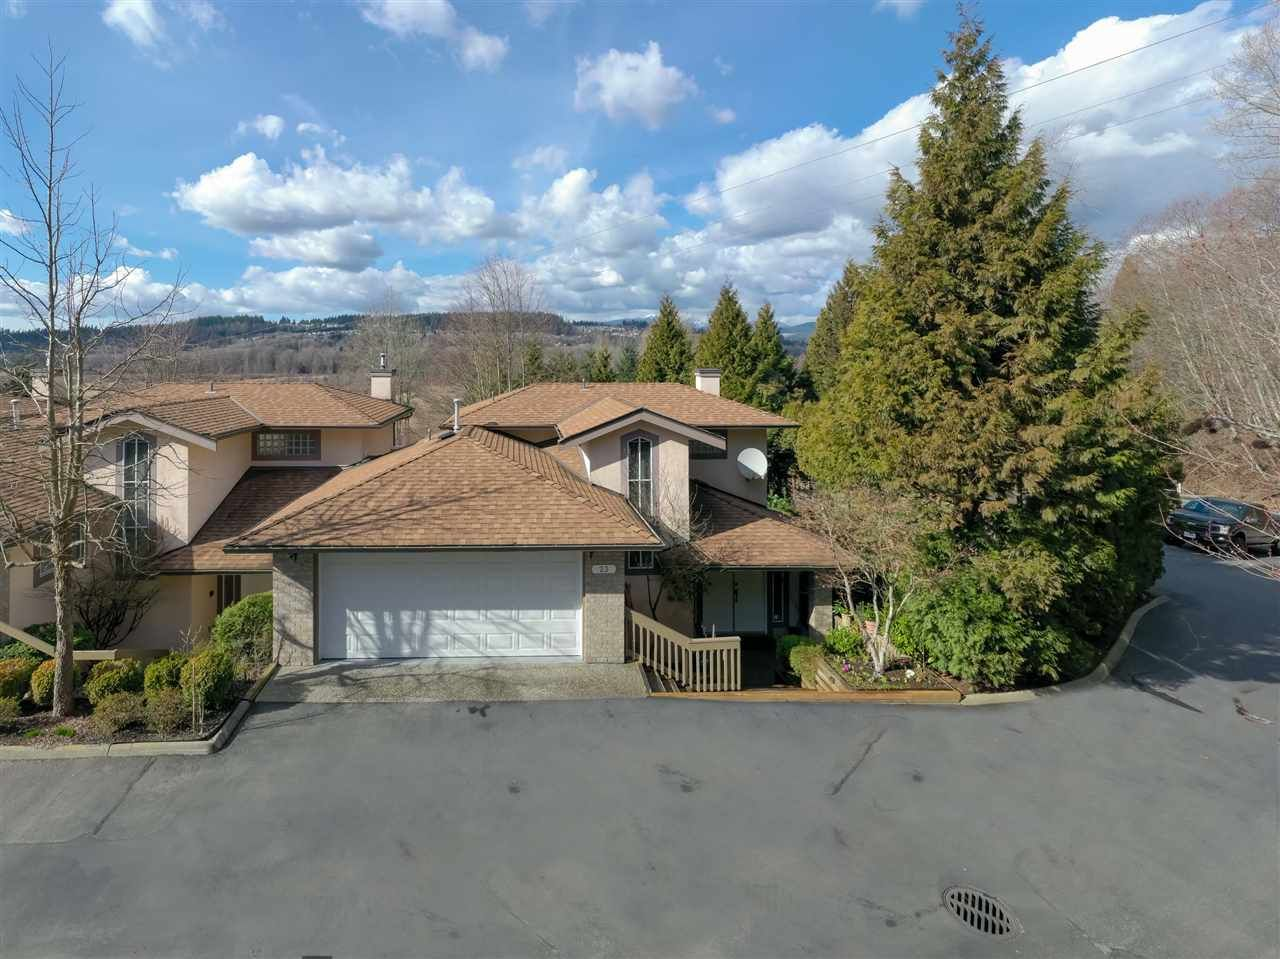 """Main Photo: 23 1238 EASTERN Drive in Port Coquitlam: Citadel PQ Townhouse for sale in """"PARKVIEW RIDGE"""" : MLS®# R2443323"""